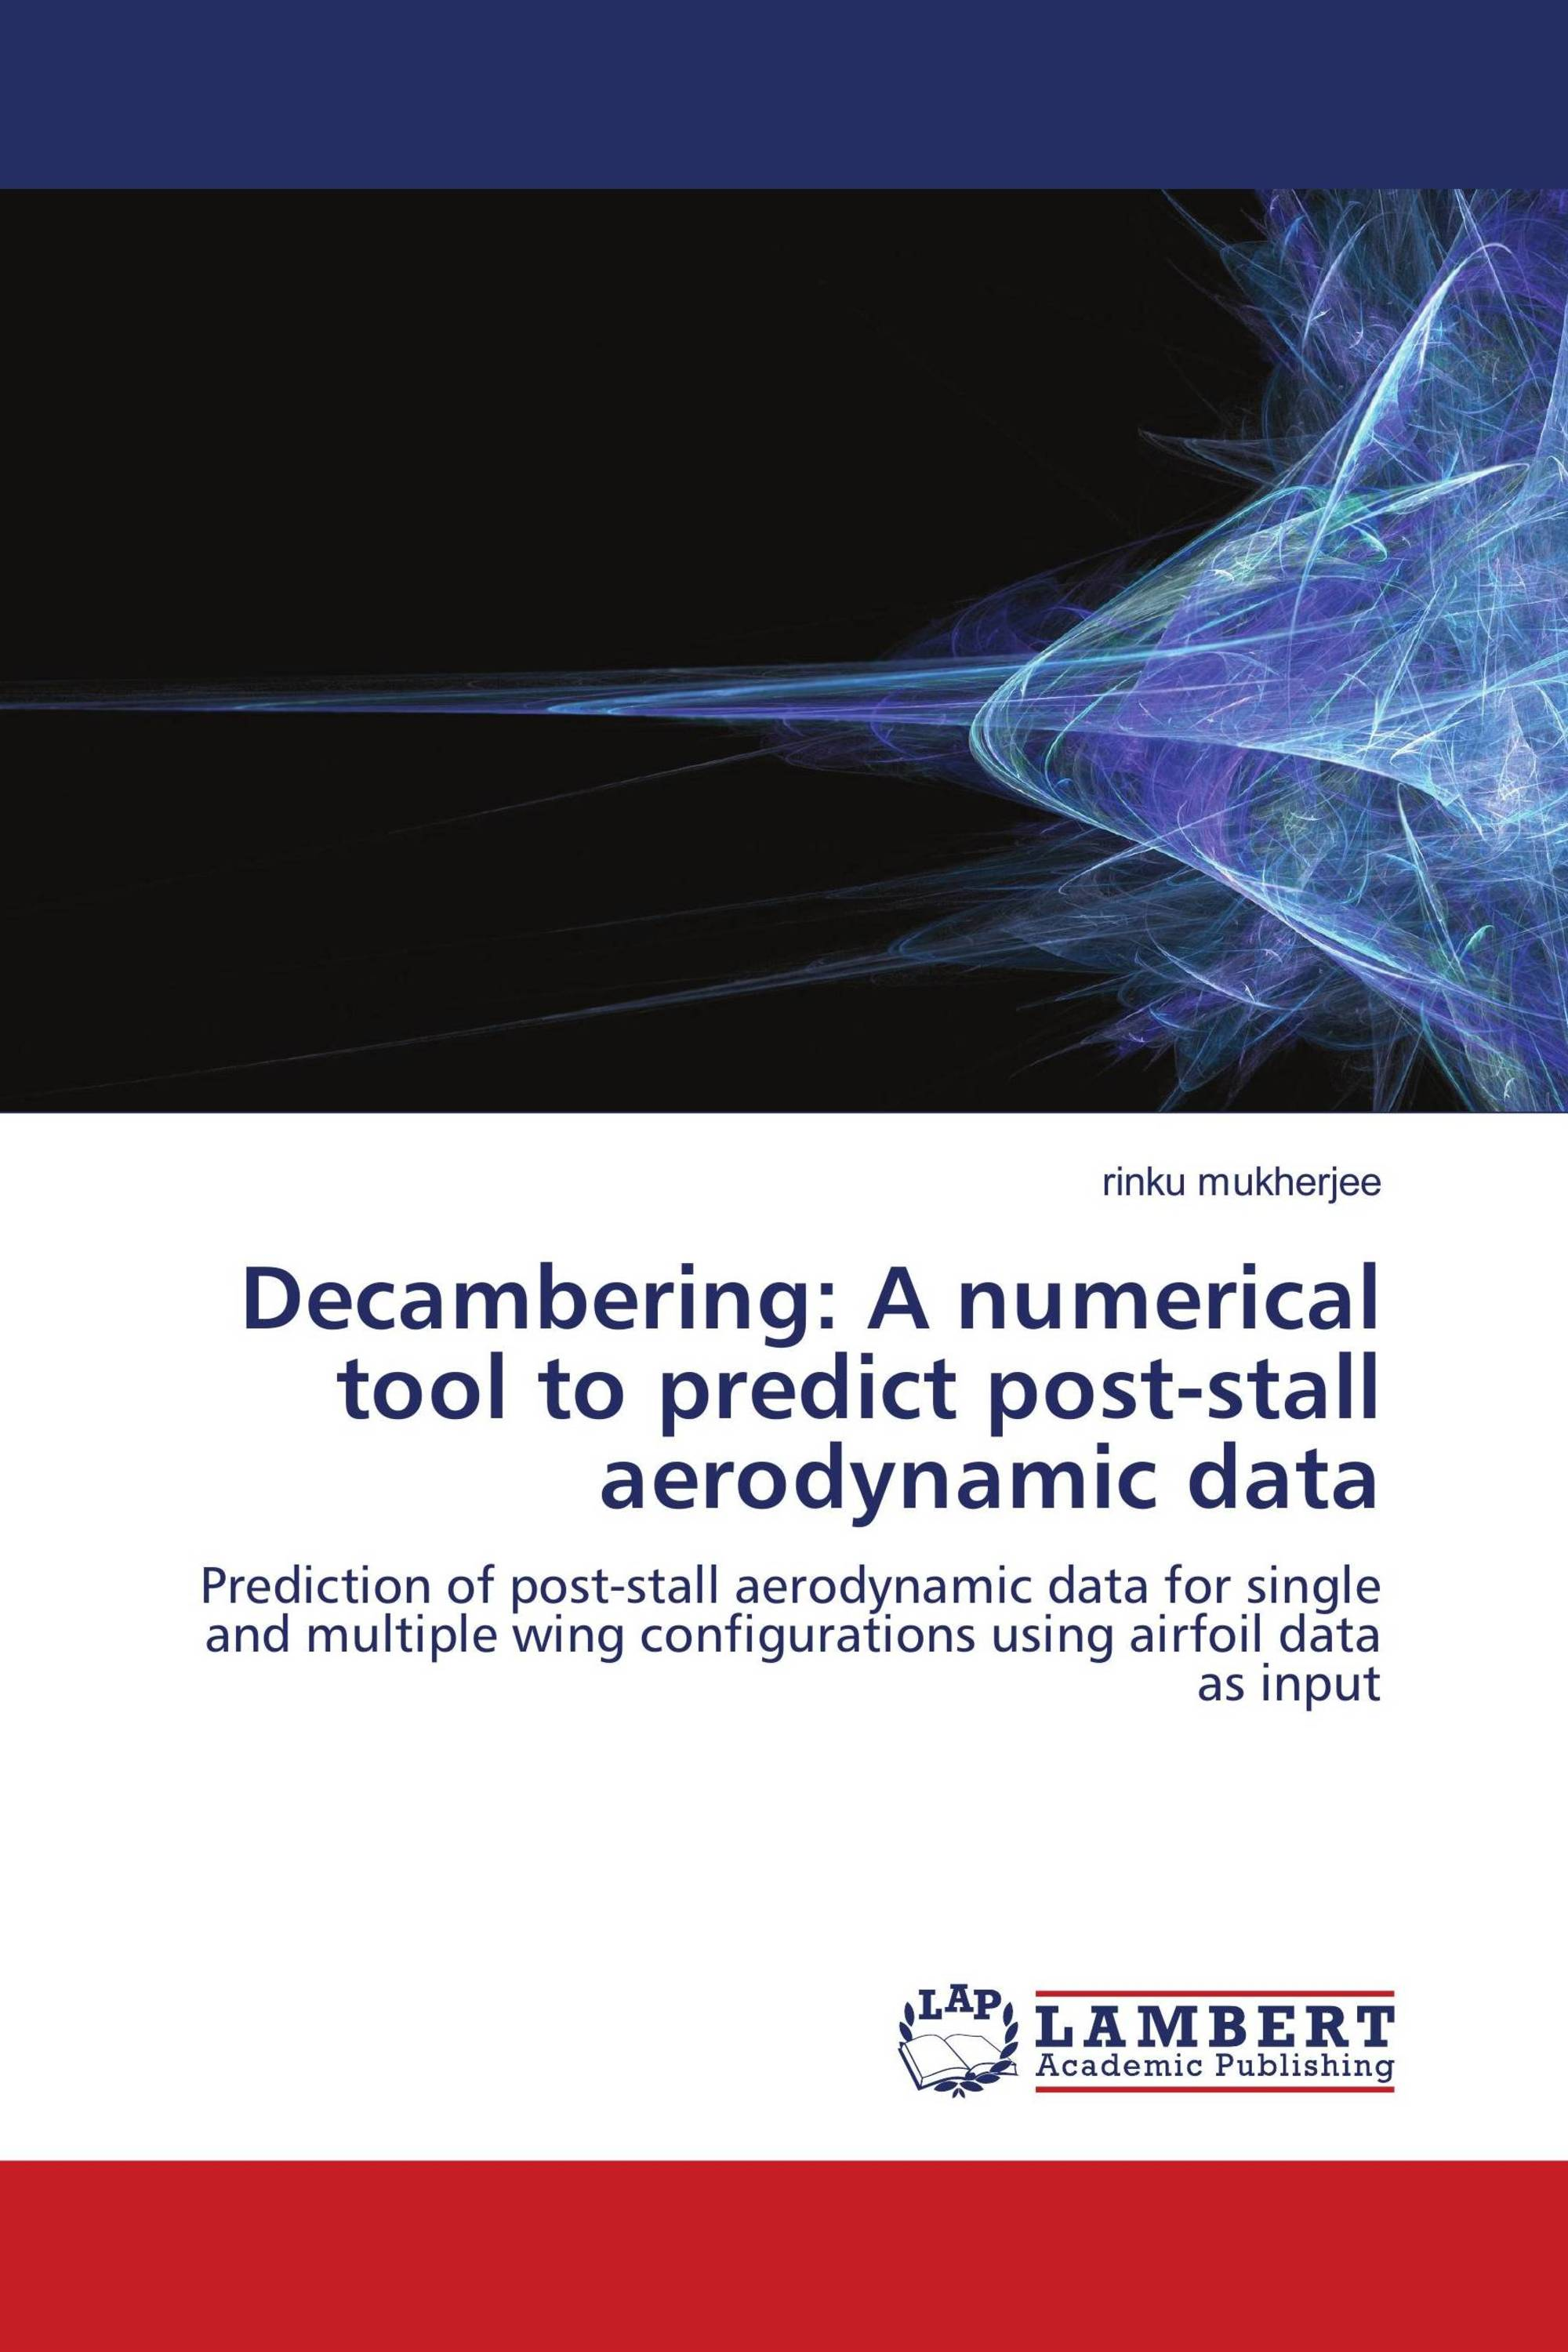 Decambering: A numerical tool to predict post-stall aerodynamic data